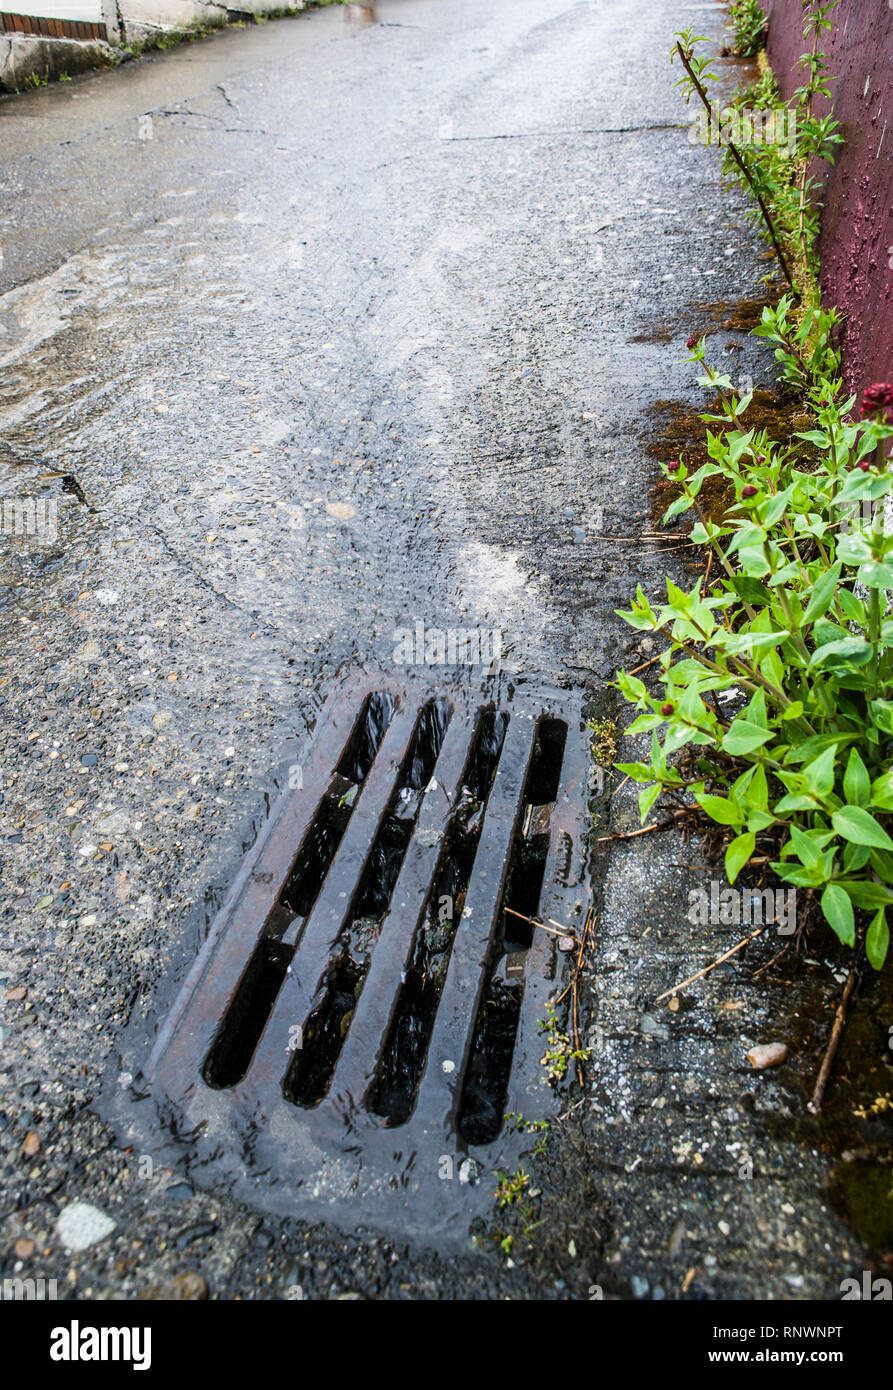 Water flowing down a street to a storm drain on a rainy day. - Stock Image